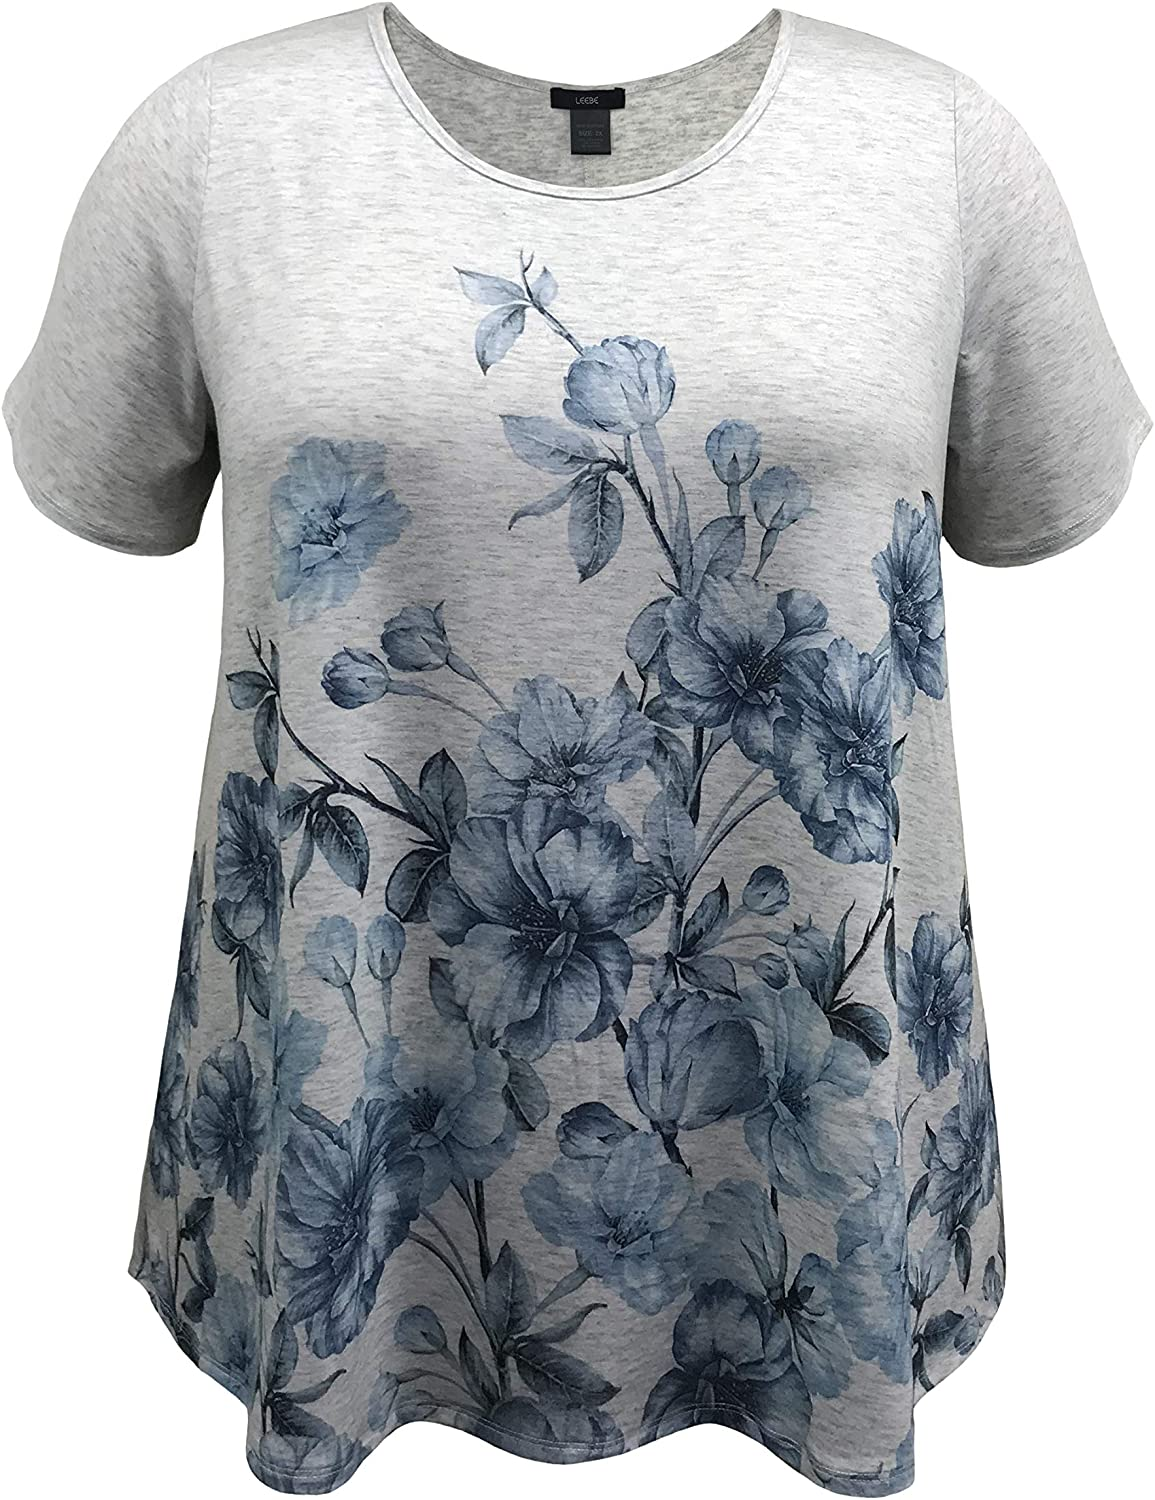 LEEBE Women and Plus Size Short Sleeve Printed Swing Tunic Top (Small-5X)